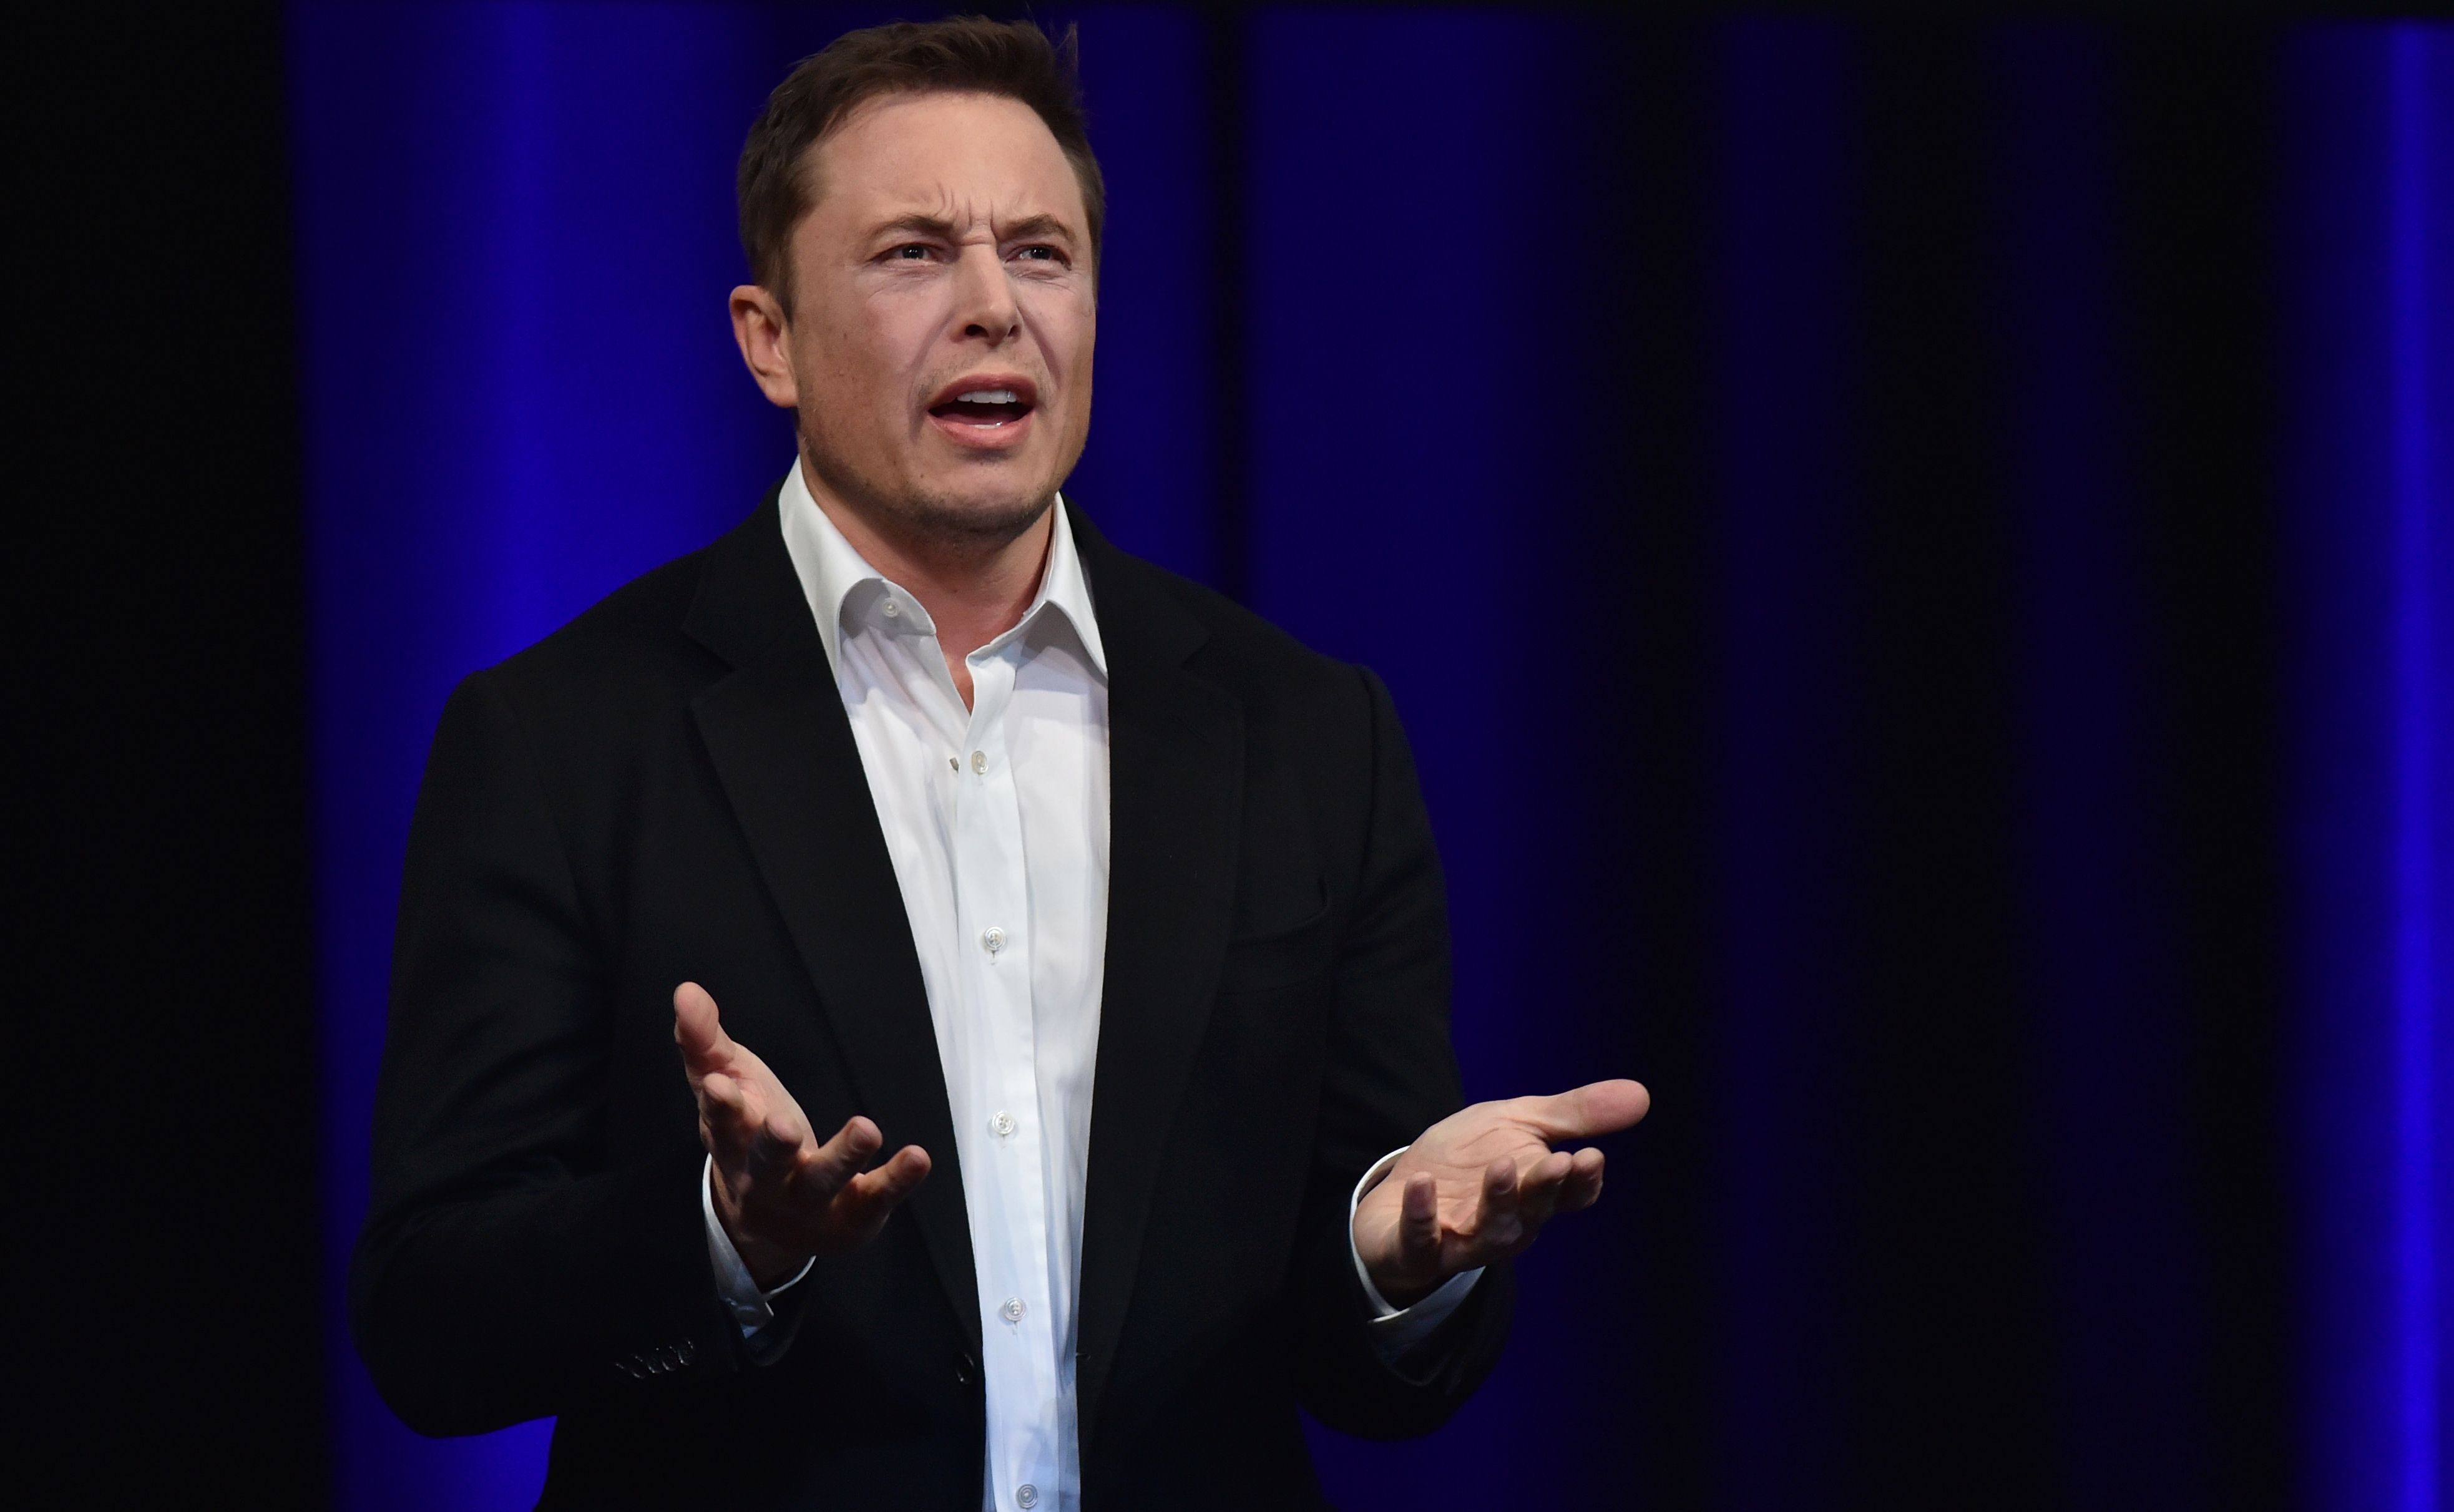 Tesla's Elon Musk settles SEC charges, will remain as CEO but relinquish chairman role